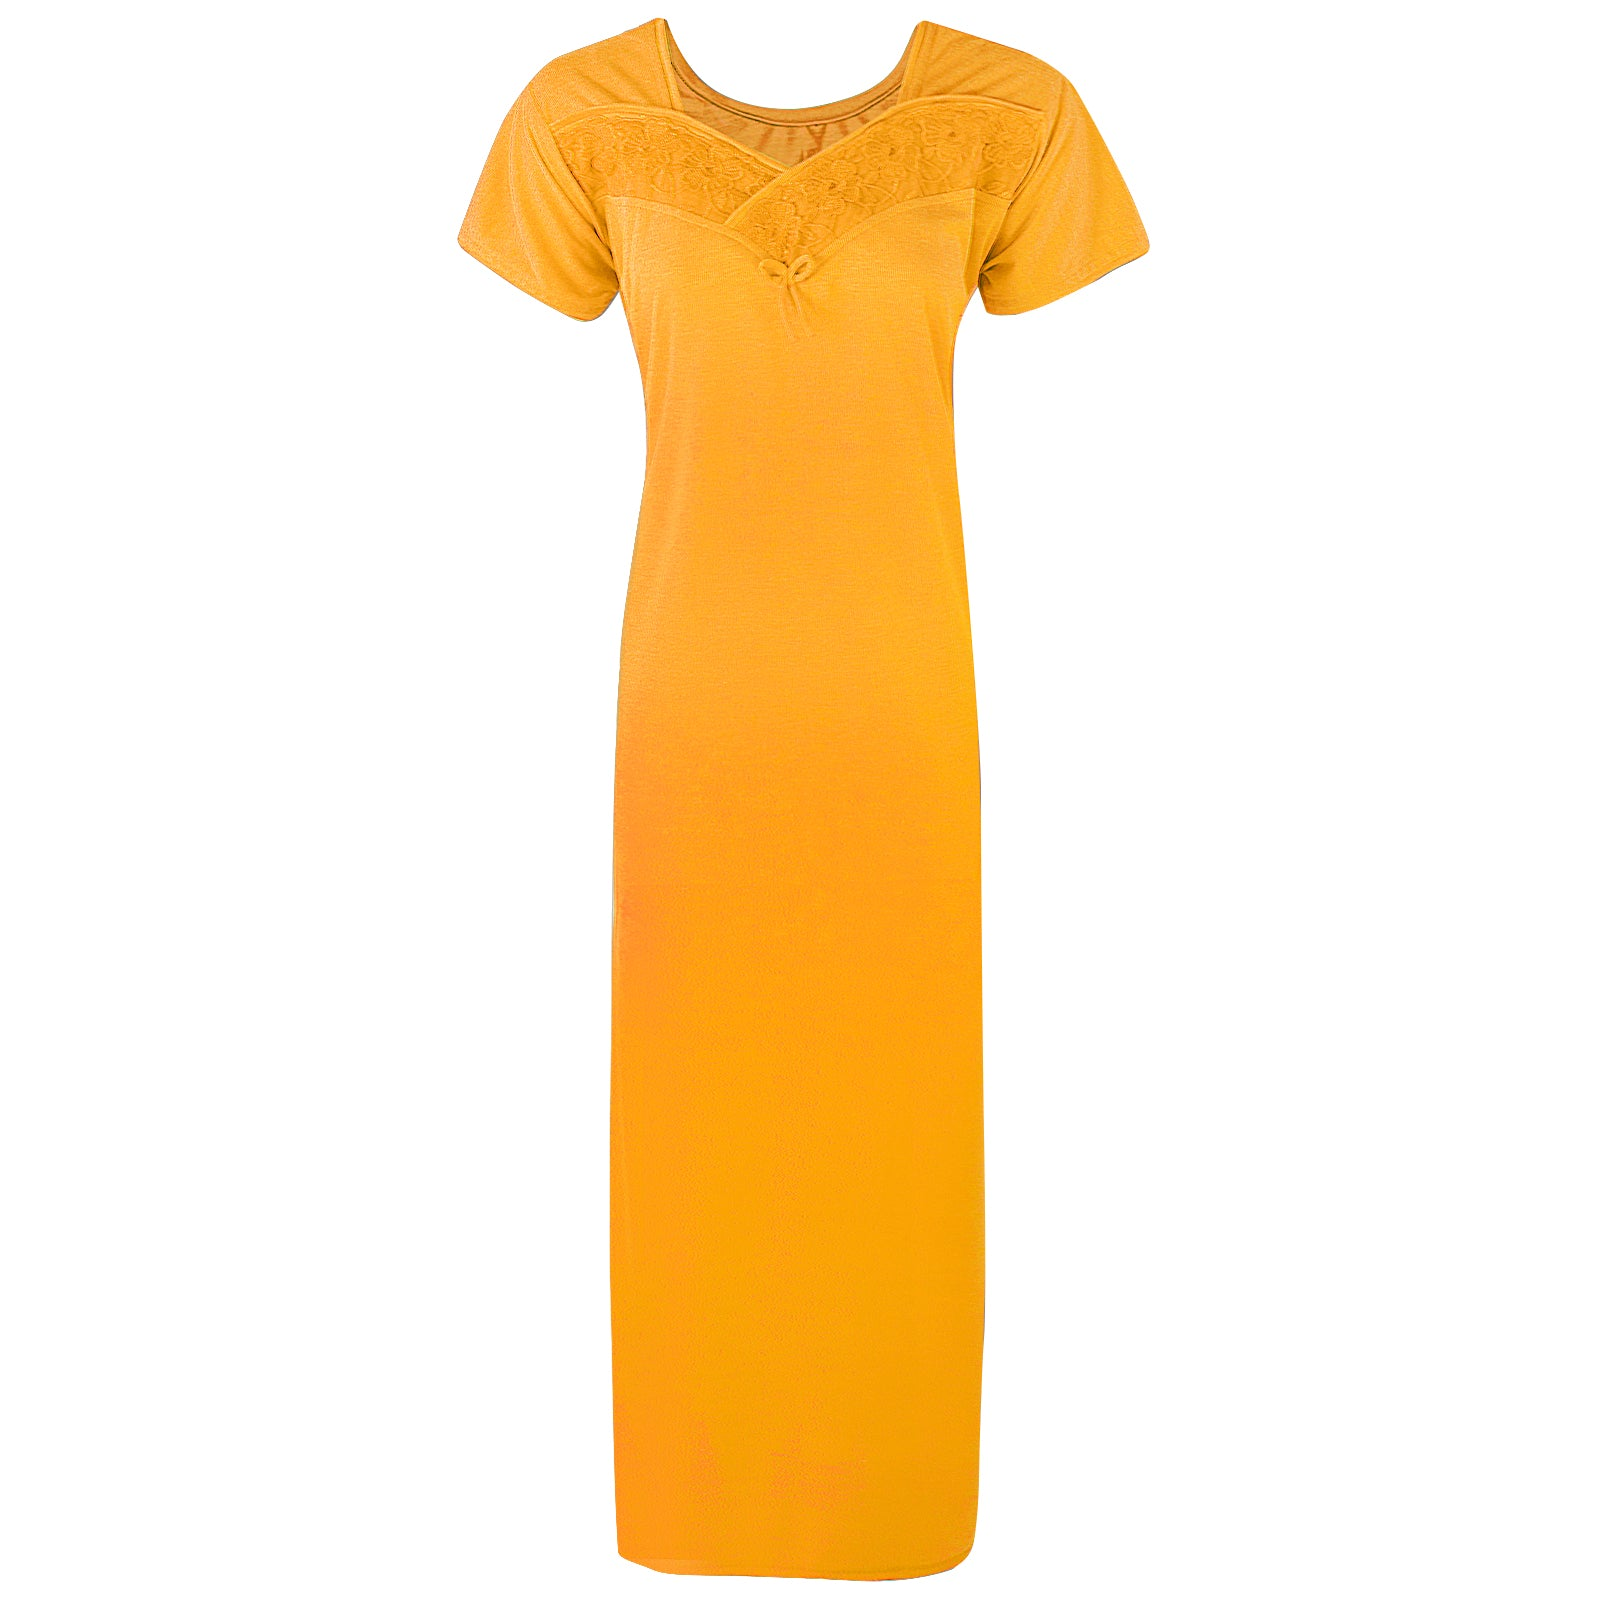 Colour: Mustard Cotton Blend Comfy Jersey Nightdress Size: 12-16